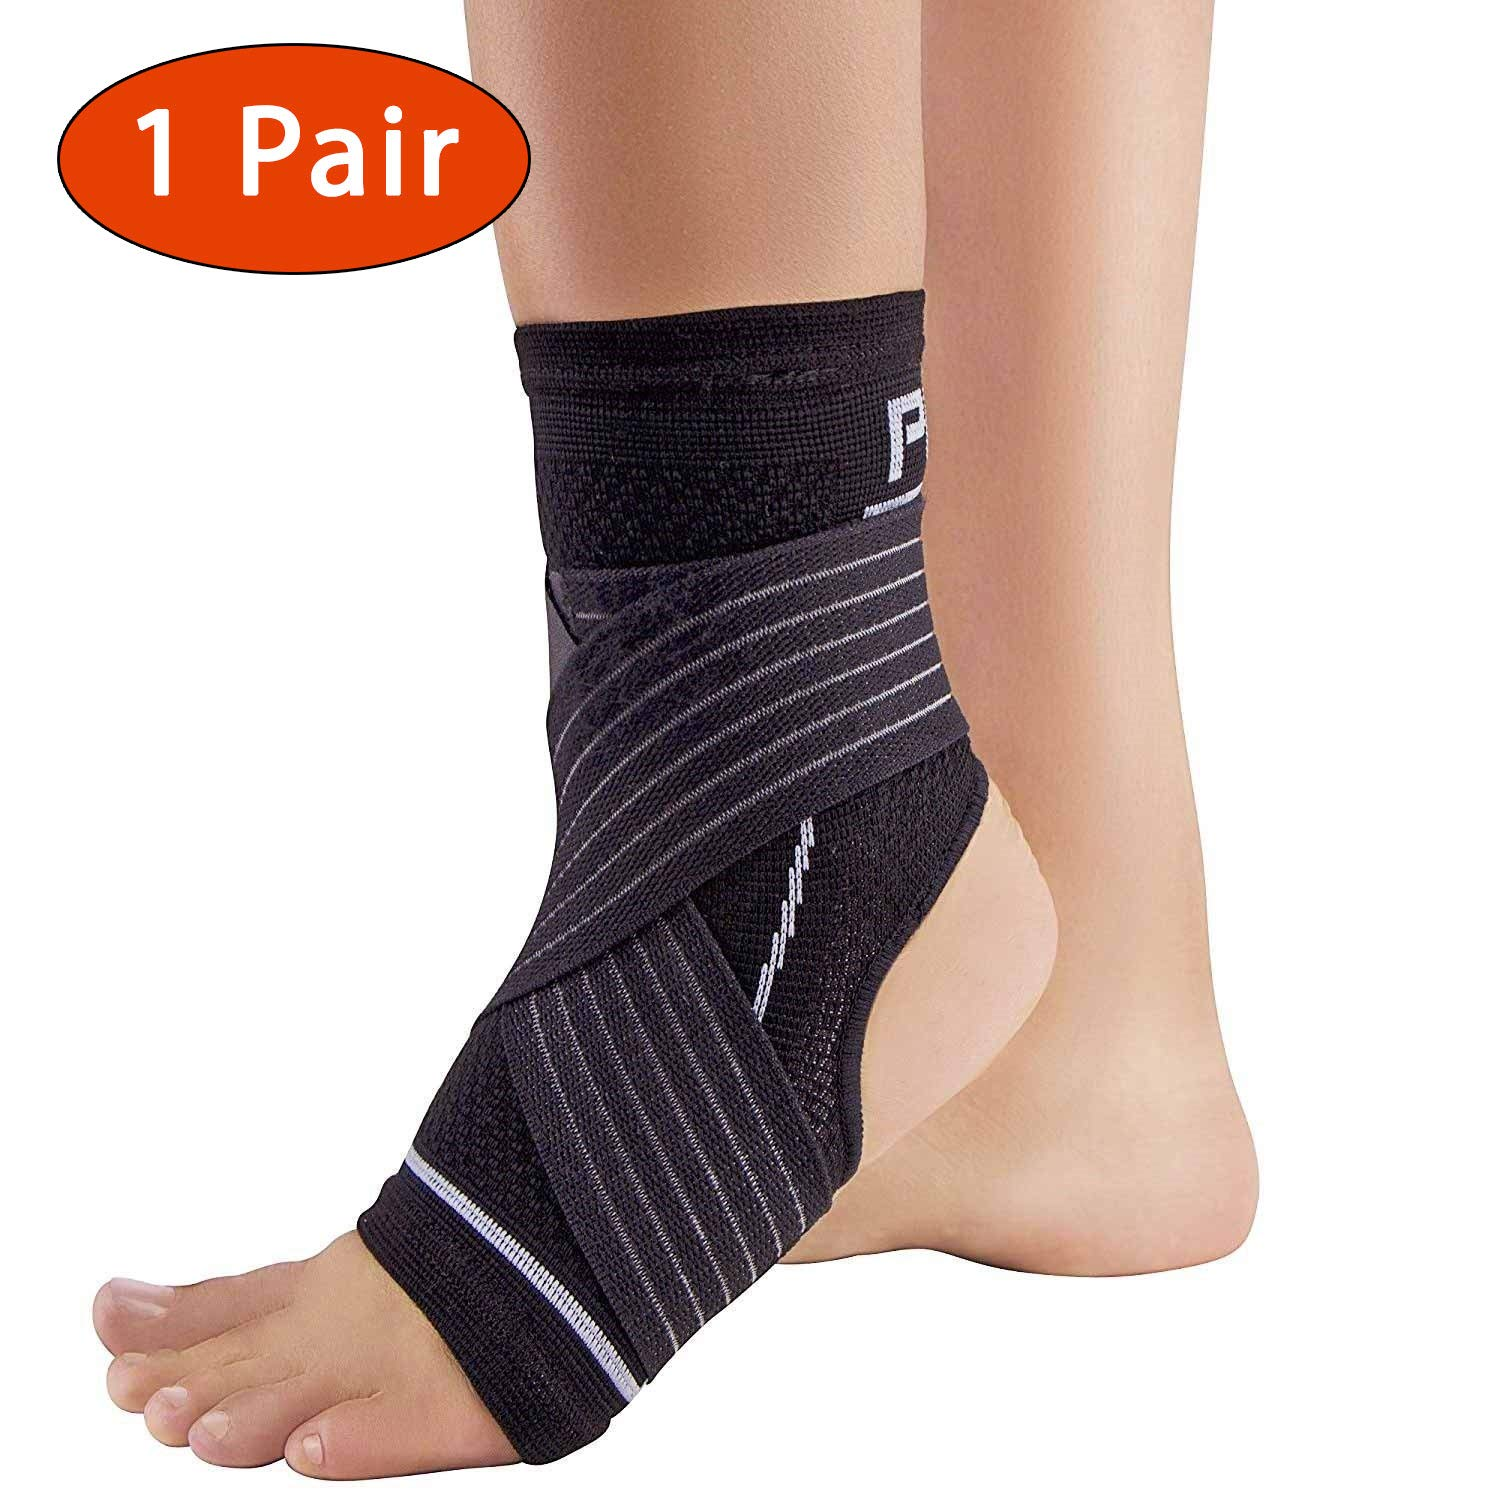 53b81918d2 Amazon.com: Ankle Support Brace with Open-Heel – Compression Sleeve with  Adjustable Strap – Great for Running, Ankle Sprains: Sports & Outdoors